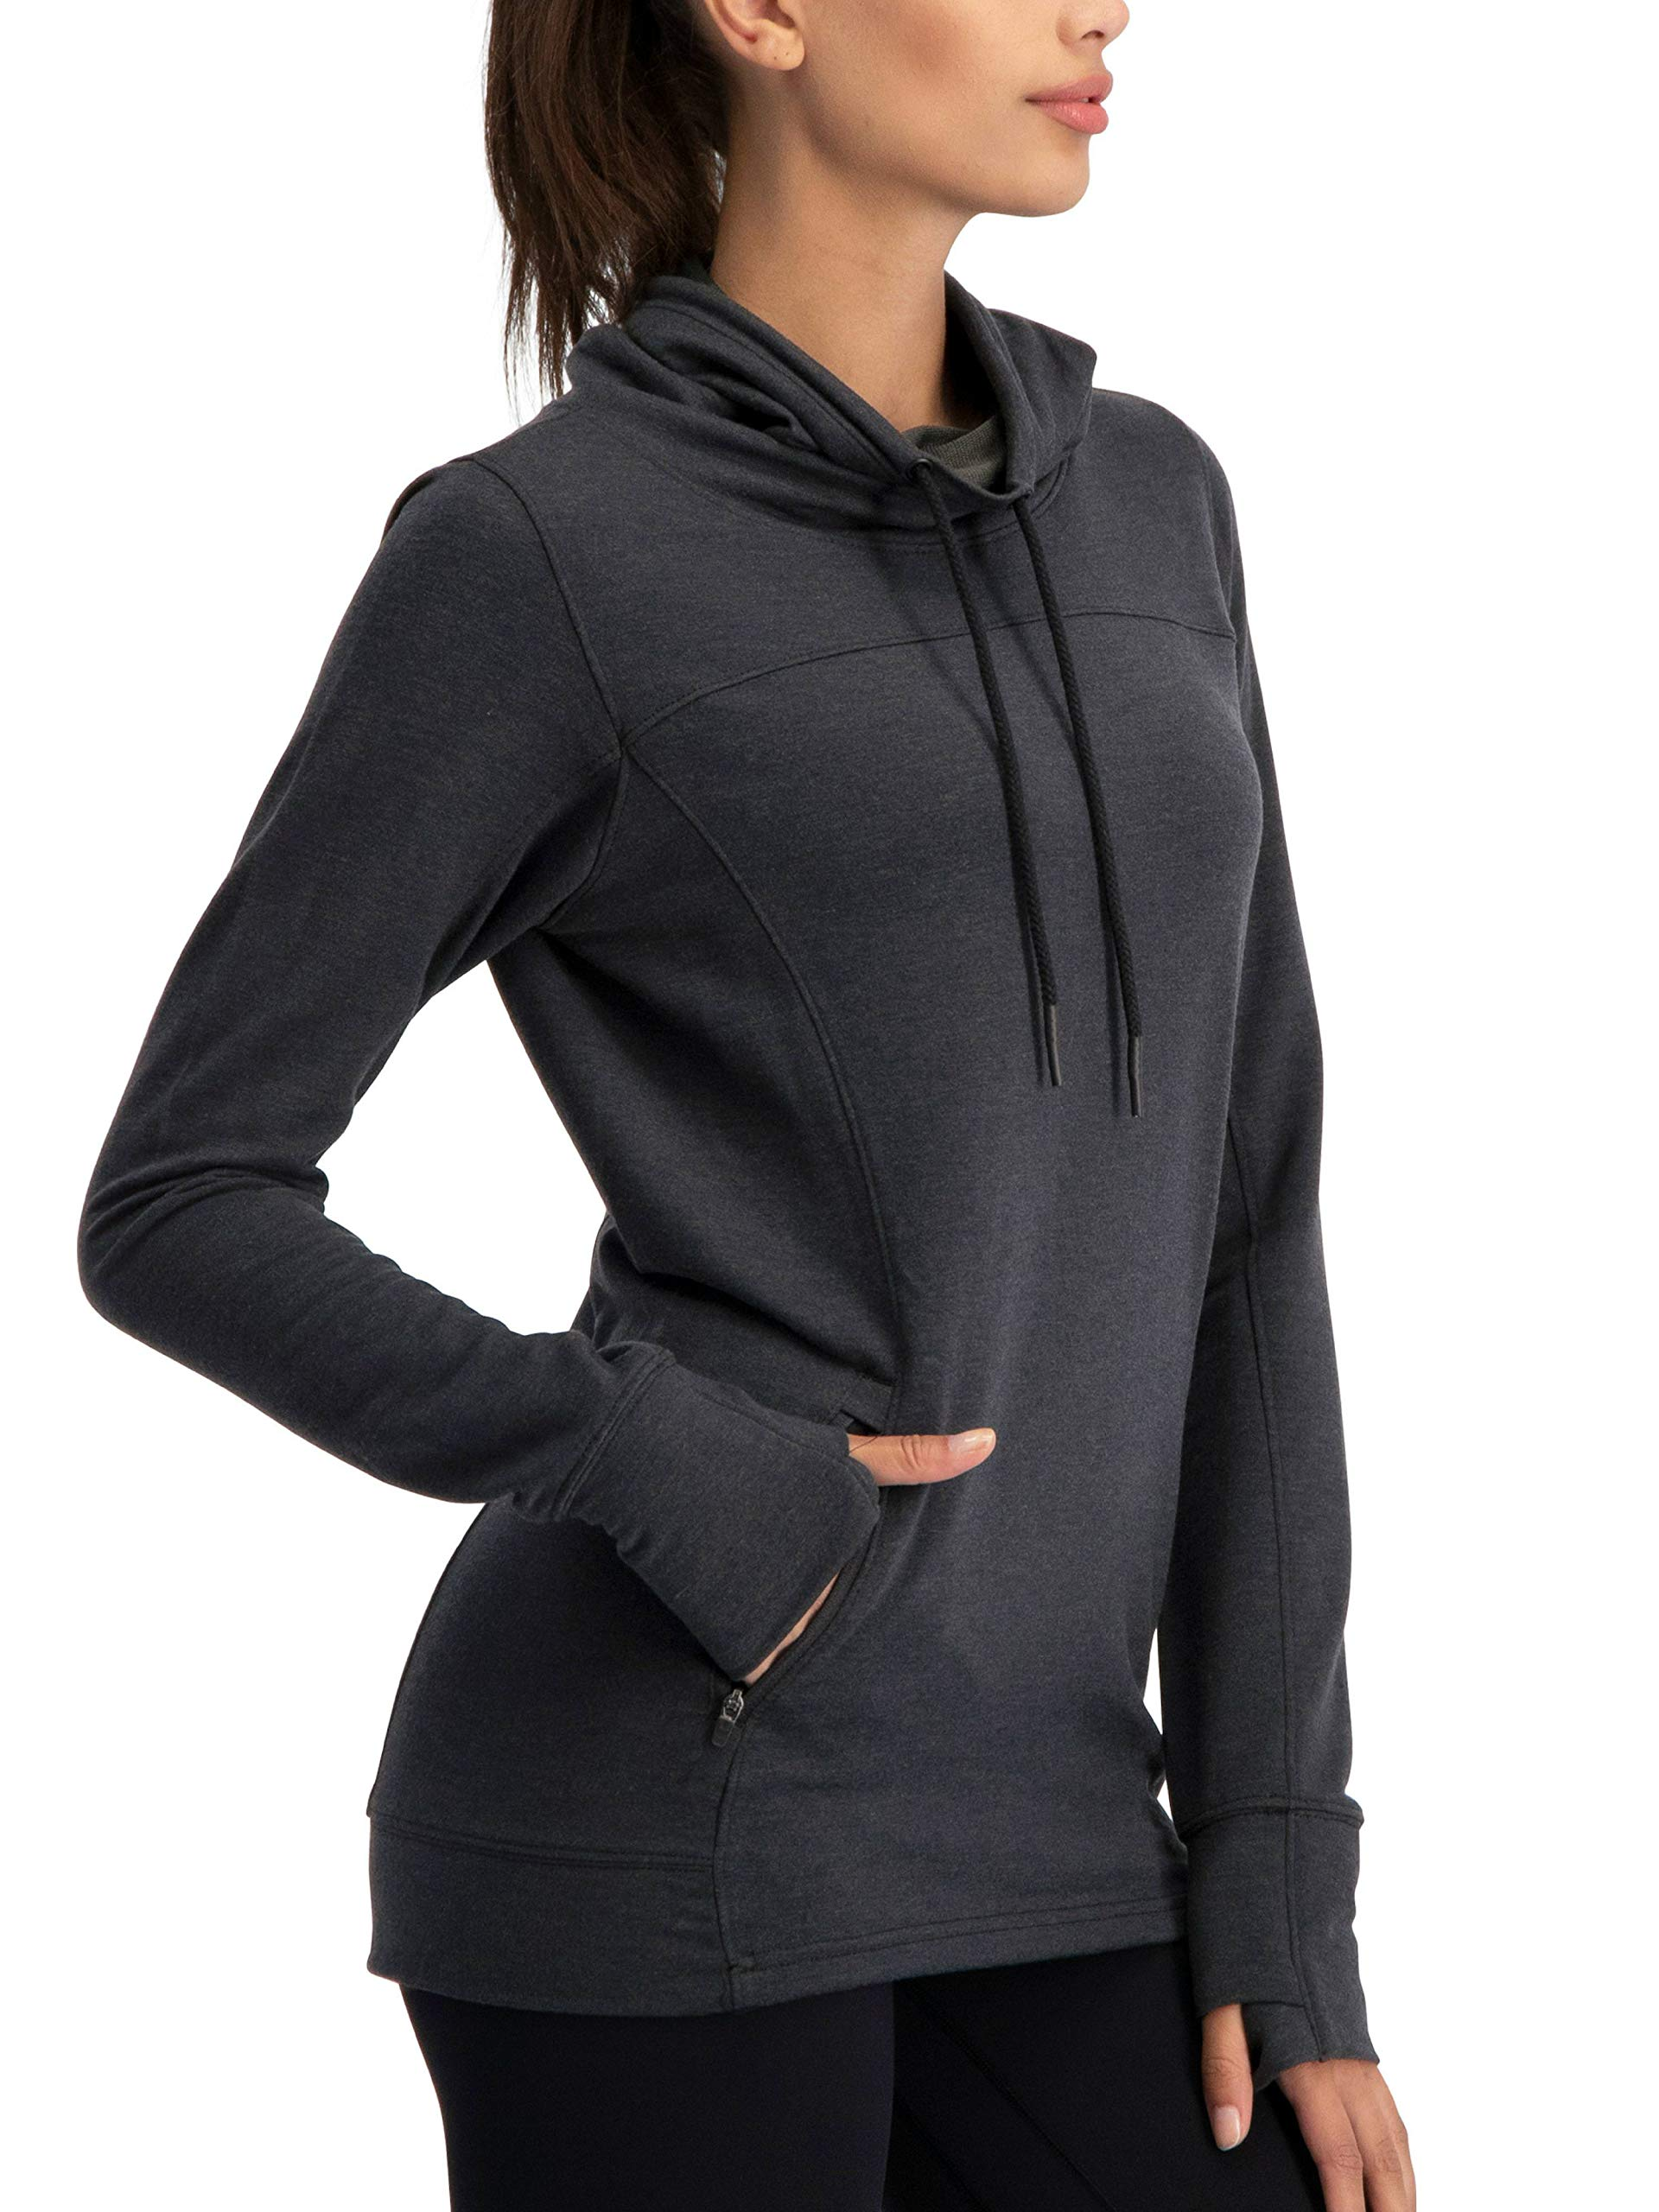 Three Sixty Six Dry Fit Pullover Sweatshirt for Women - Fleece Cowl Neck Sweater Jacket - Zip Pockets and Thumbholes by Three Sixty Six